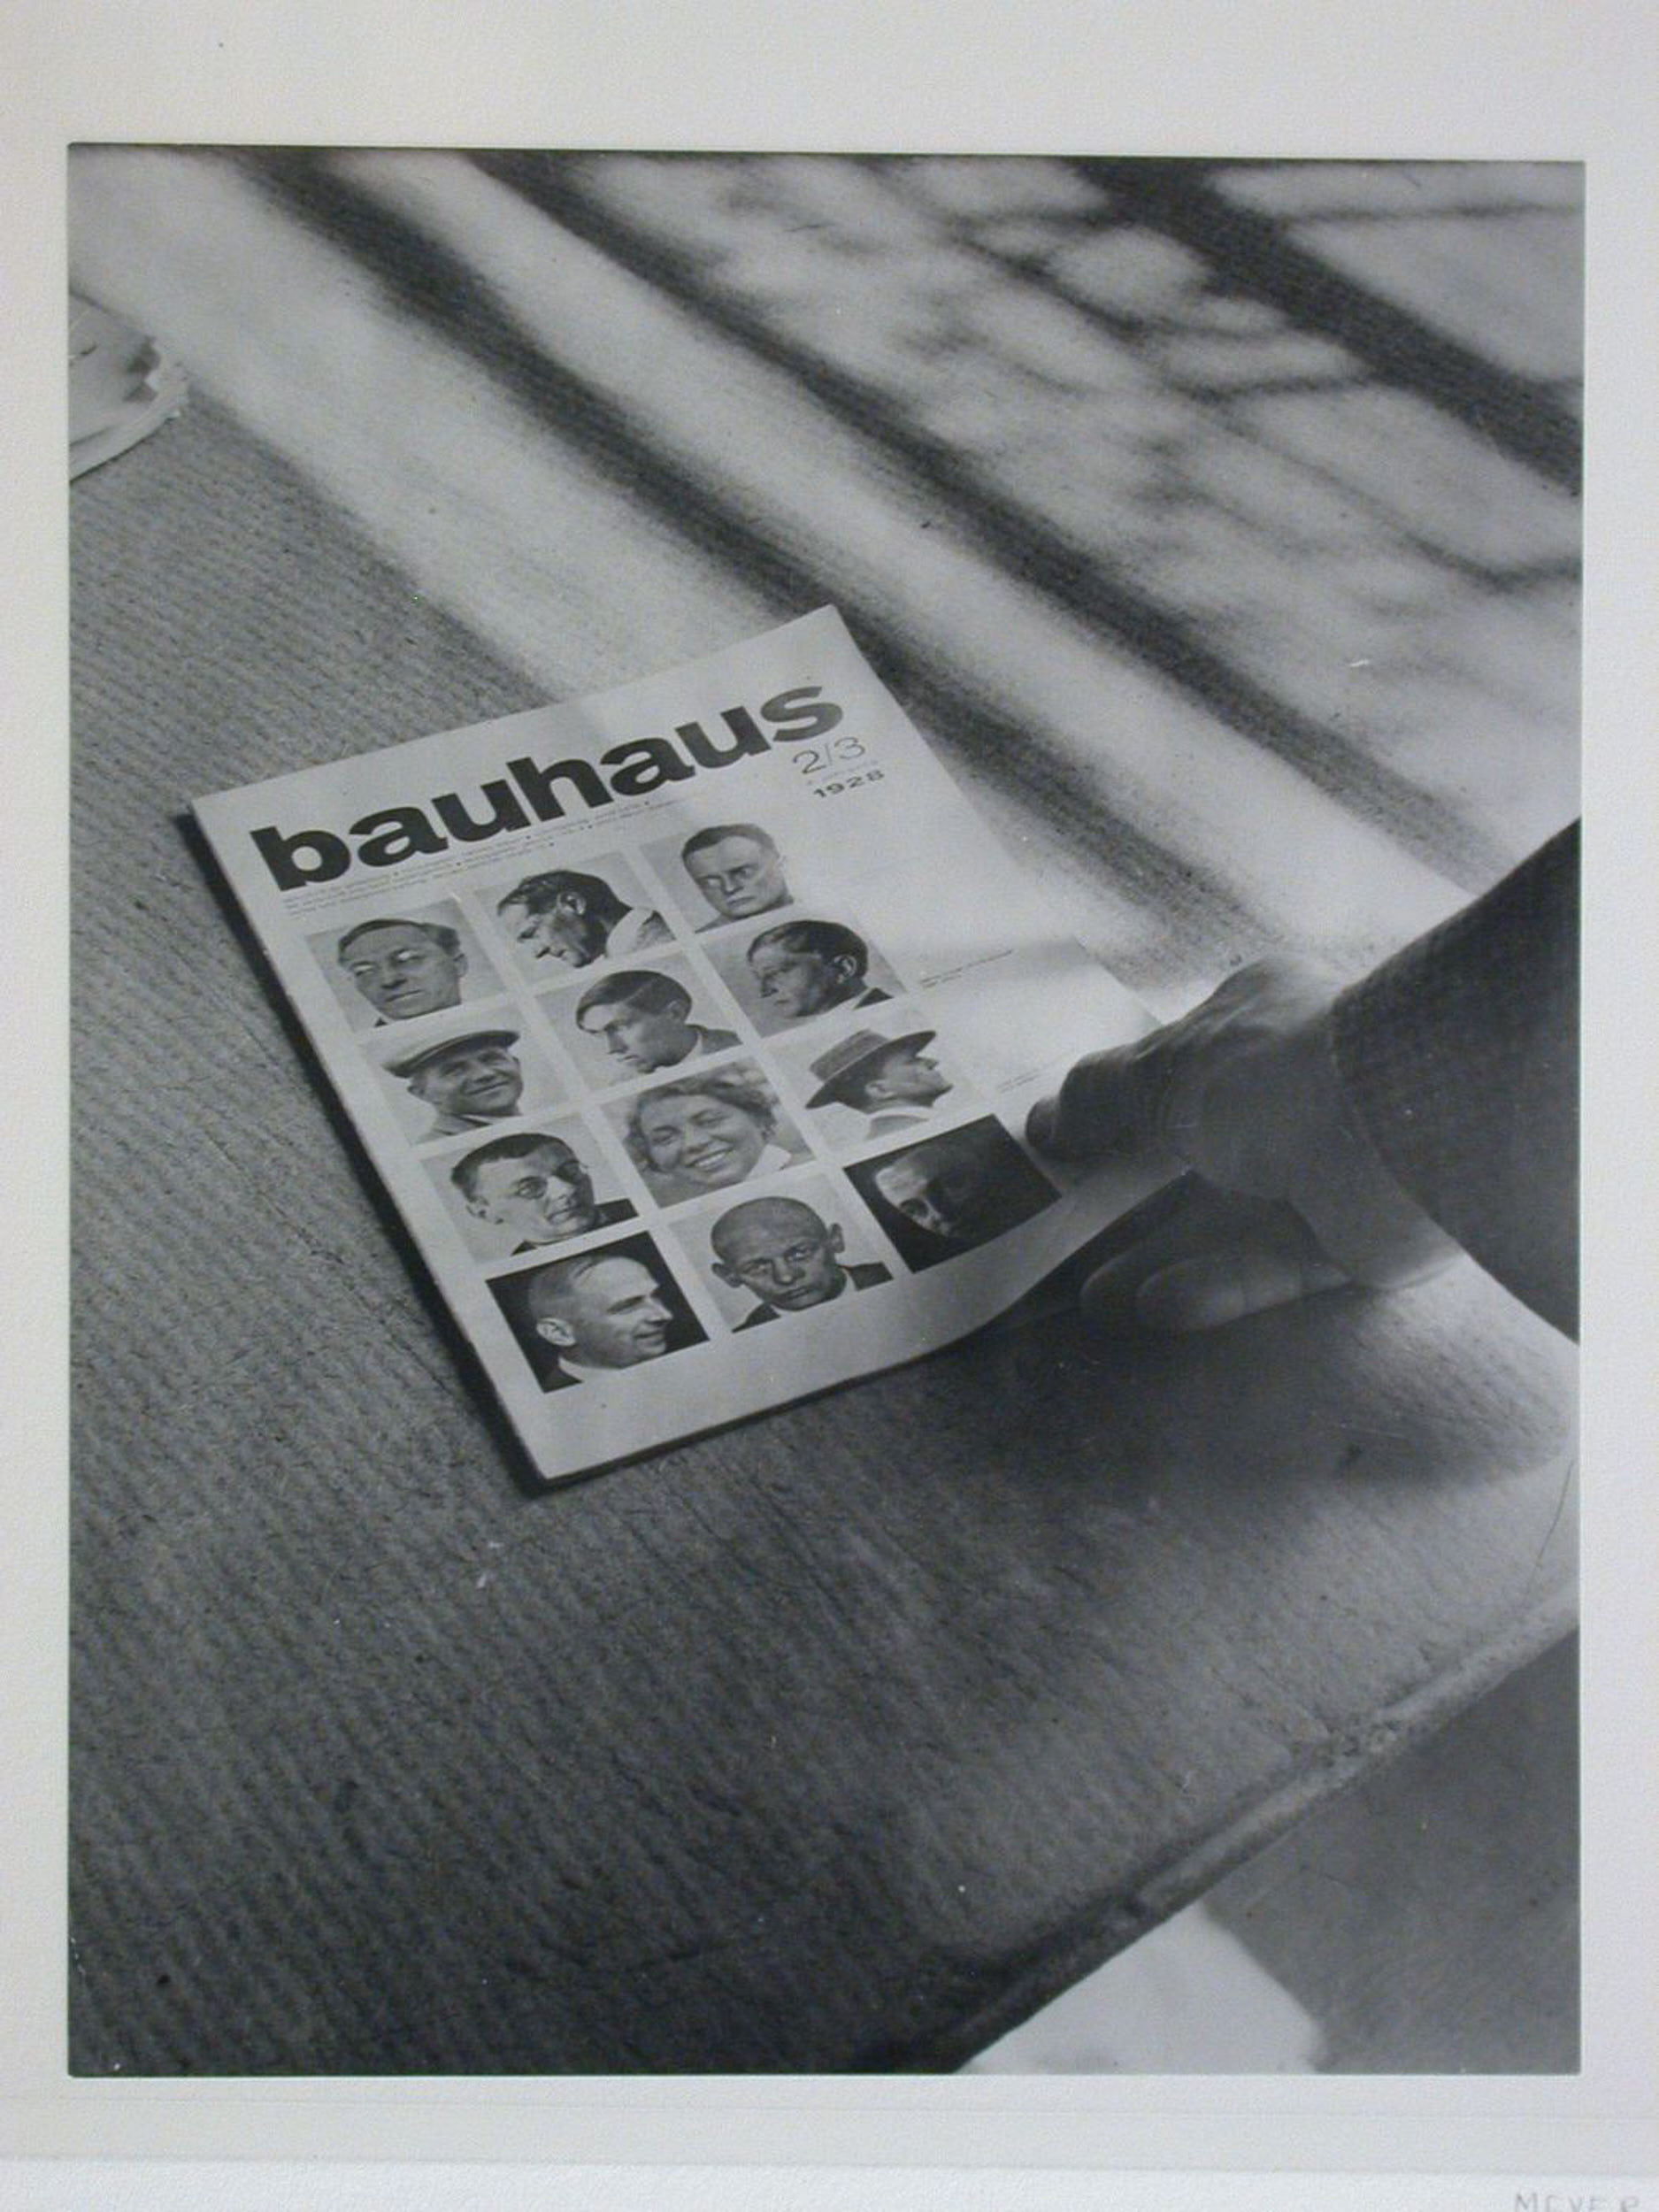 12 Years Of Bauhaus — anniversary magazine